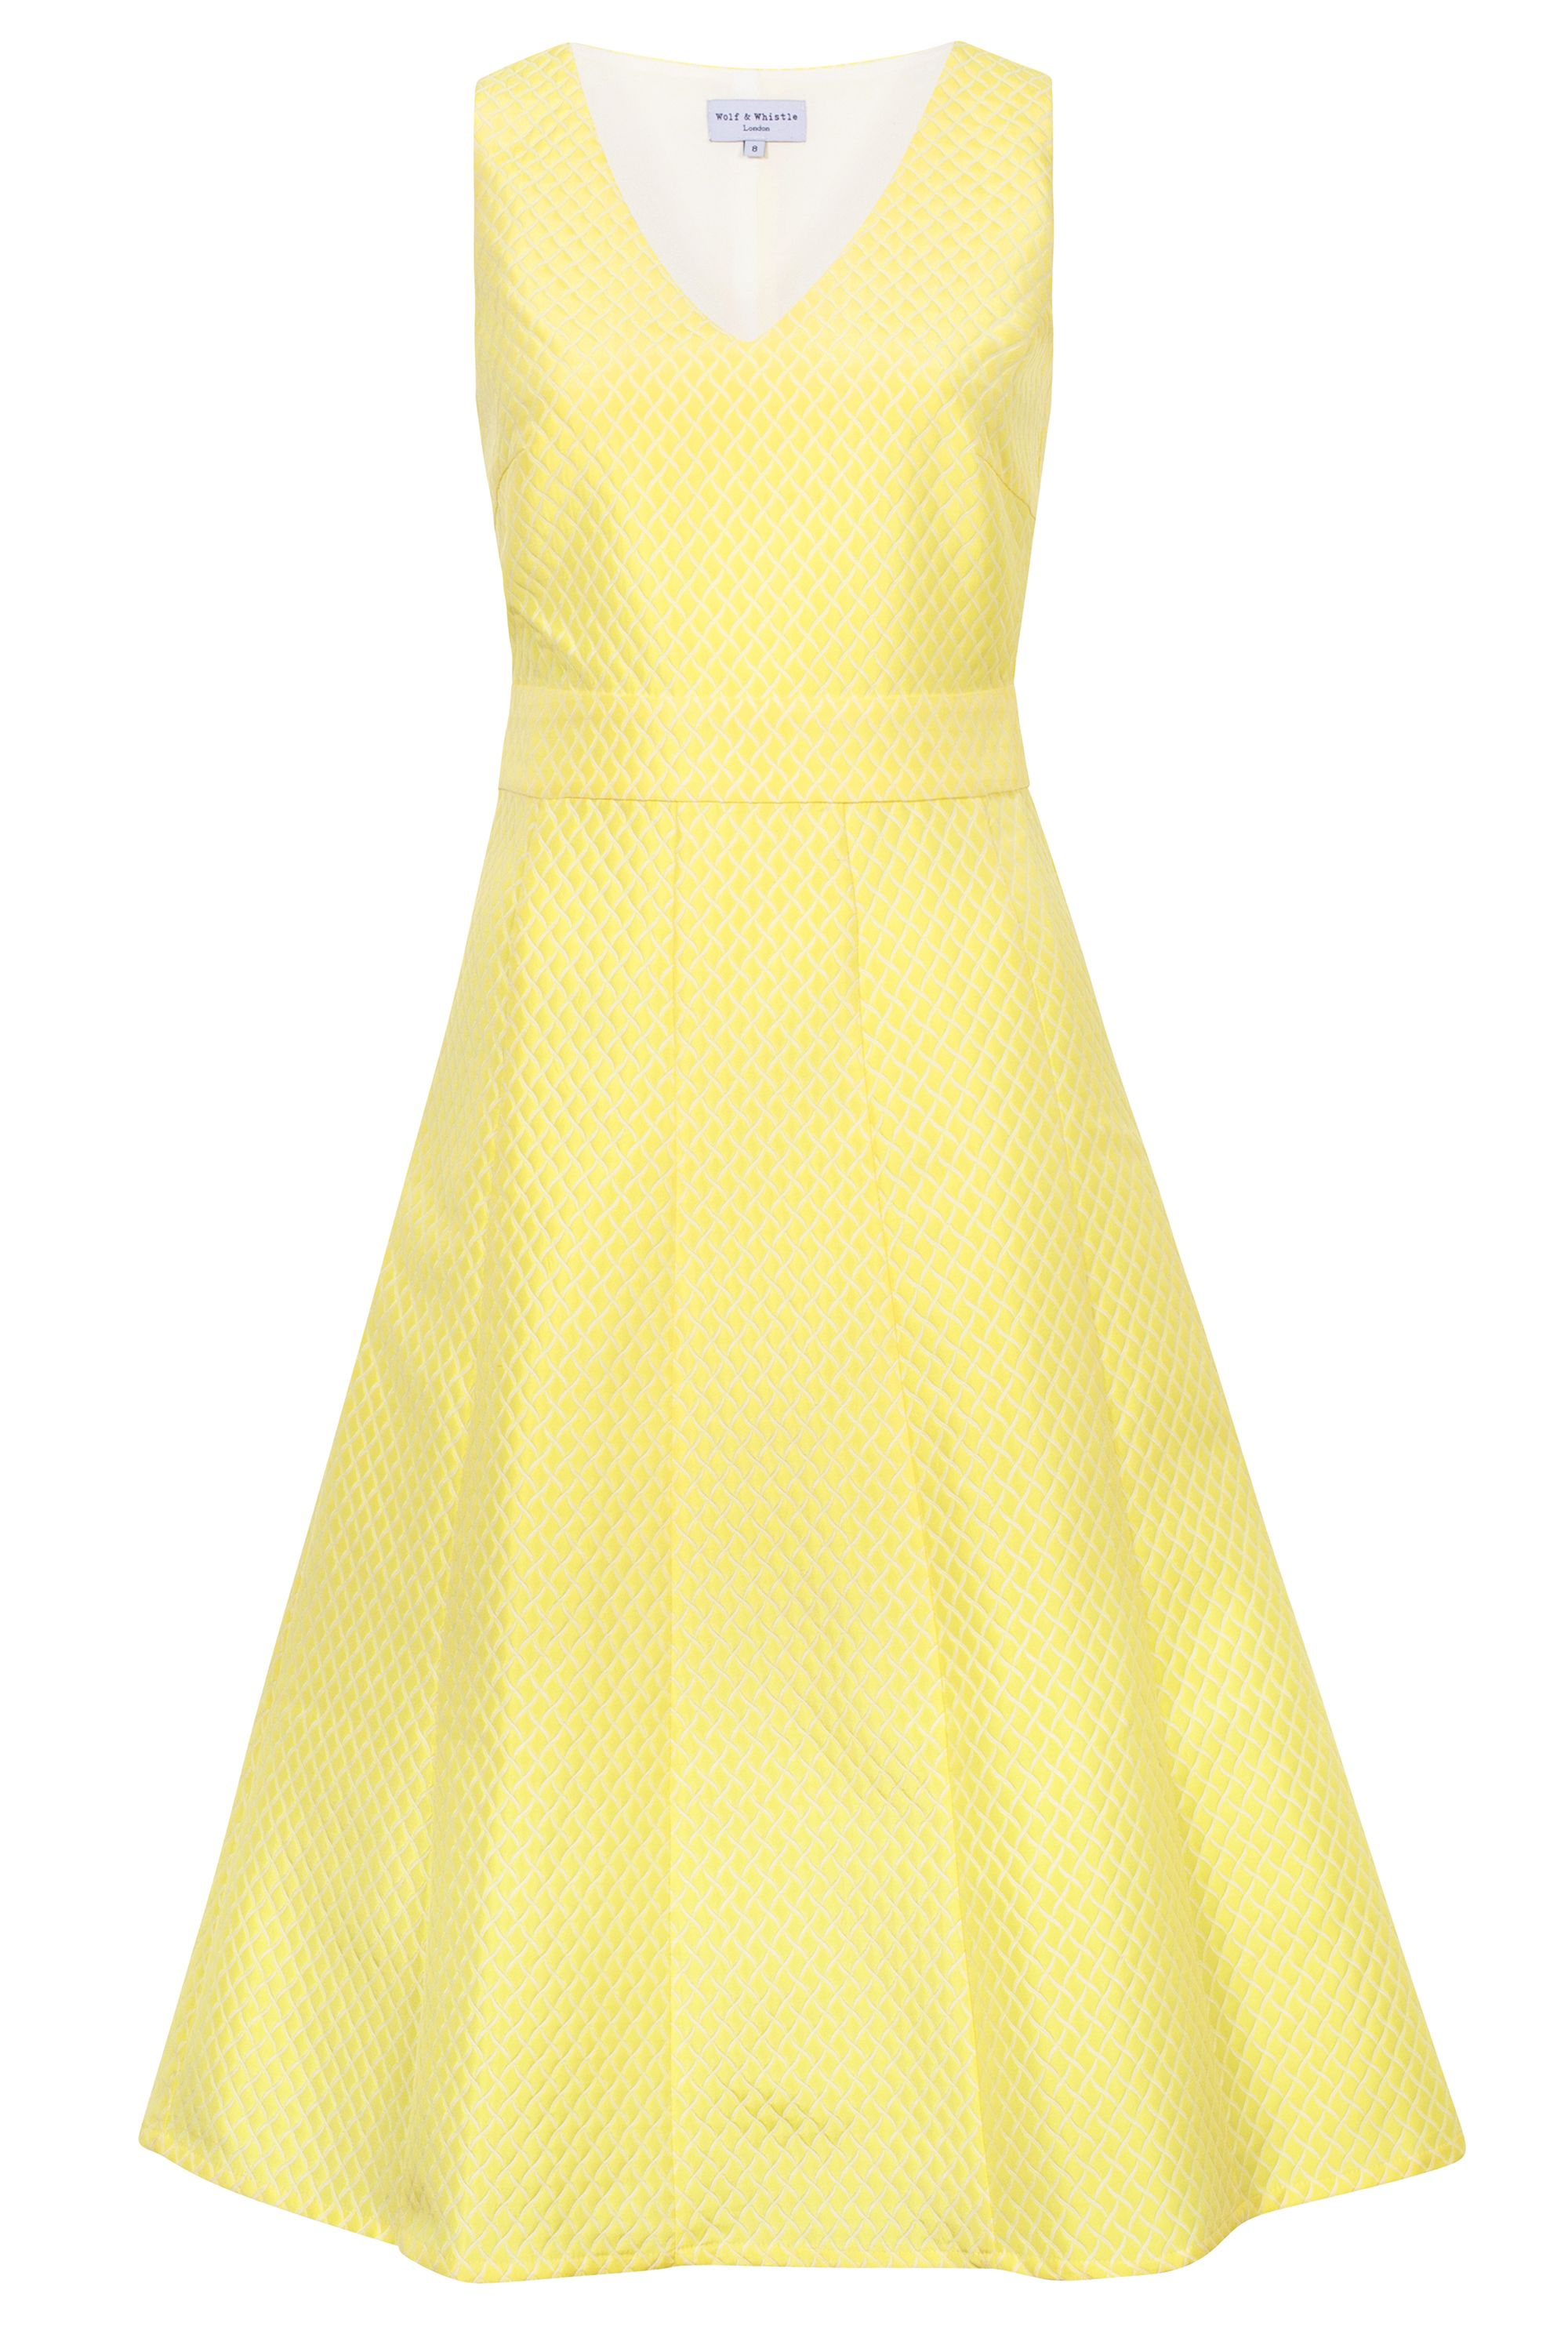 Wolf & Whistle Wolf & Whistle Brocade Cut Out Dress, Yellow